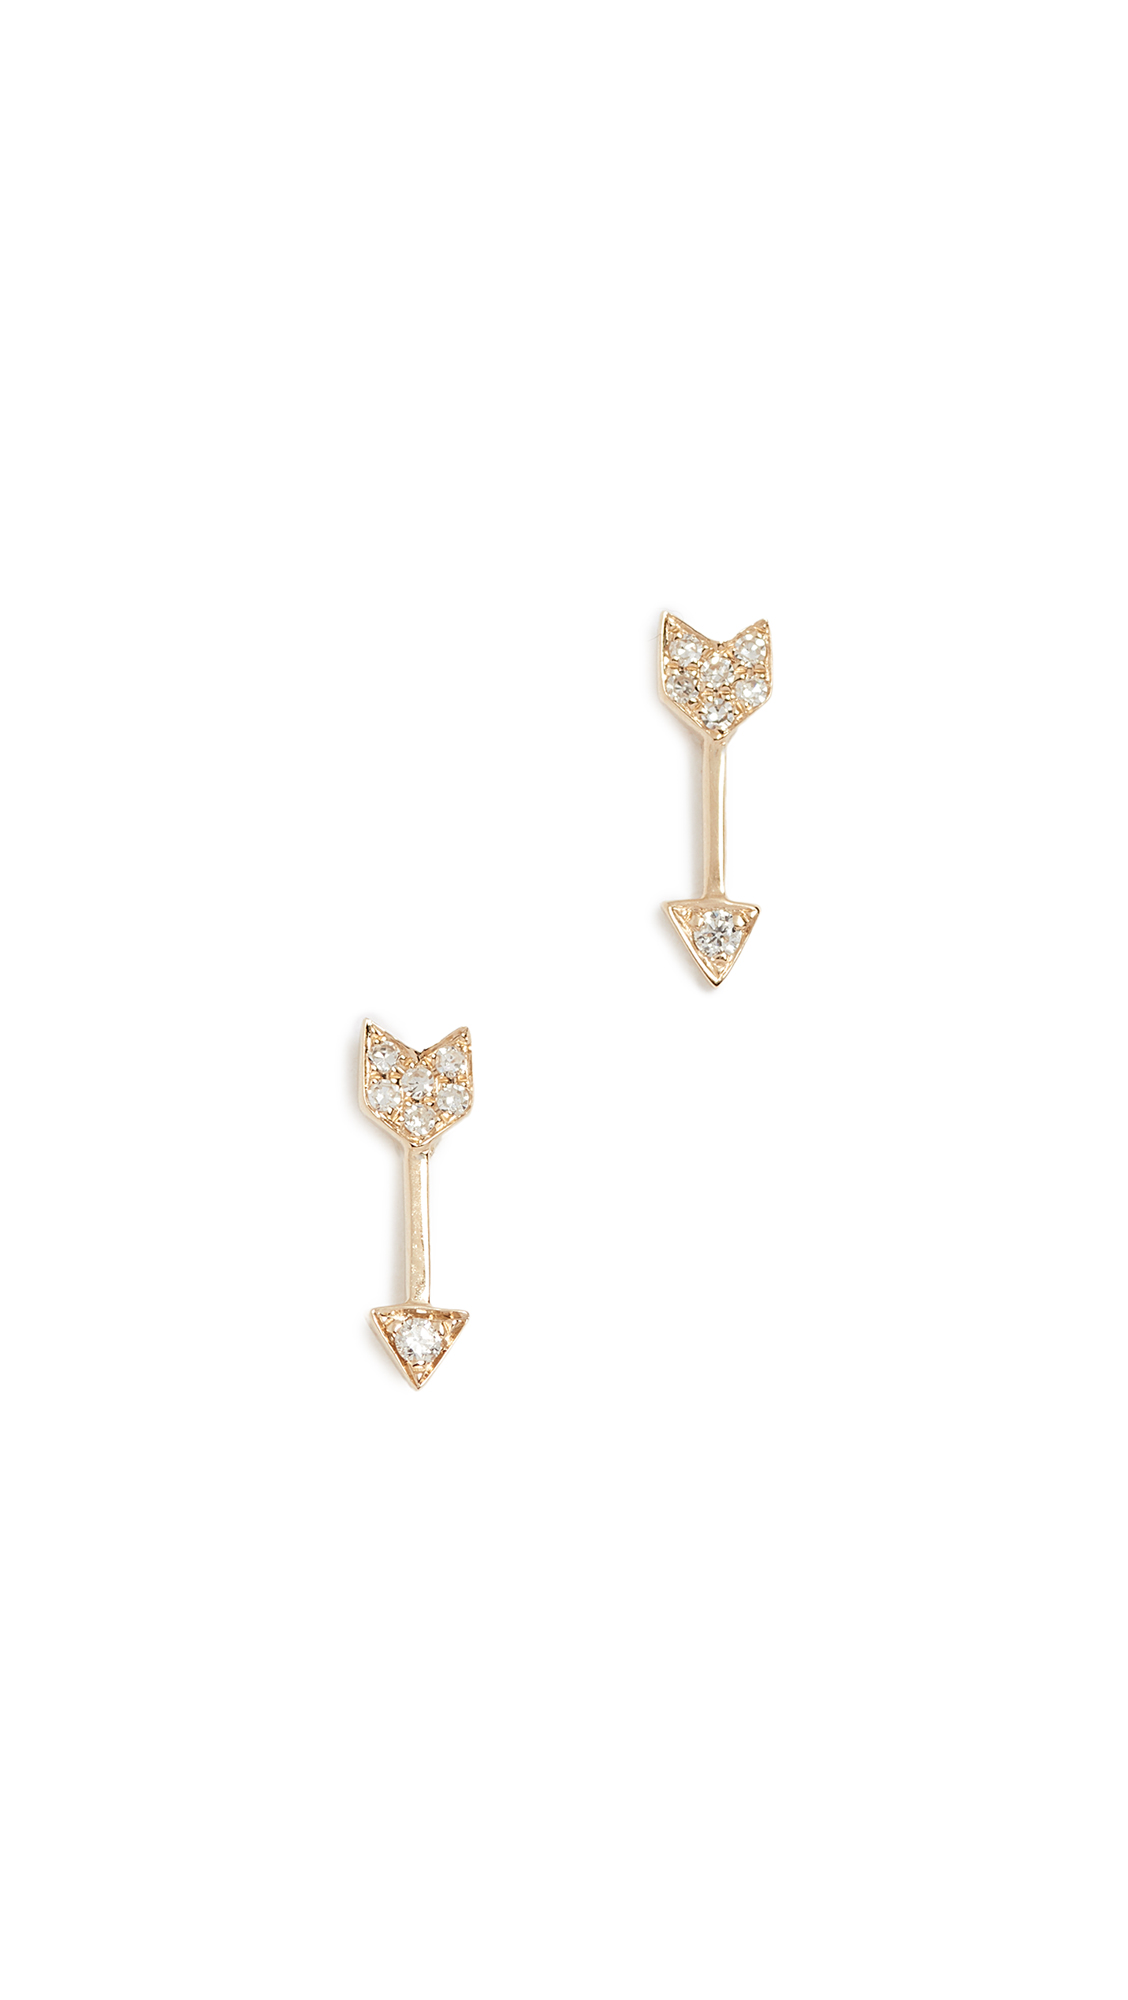 EF Collection 14k Gold Diamond Mini Arrow Stud Earrings - Yellow Gold/Clear